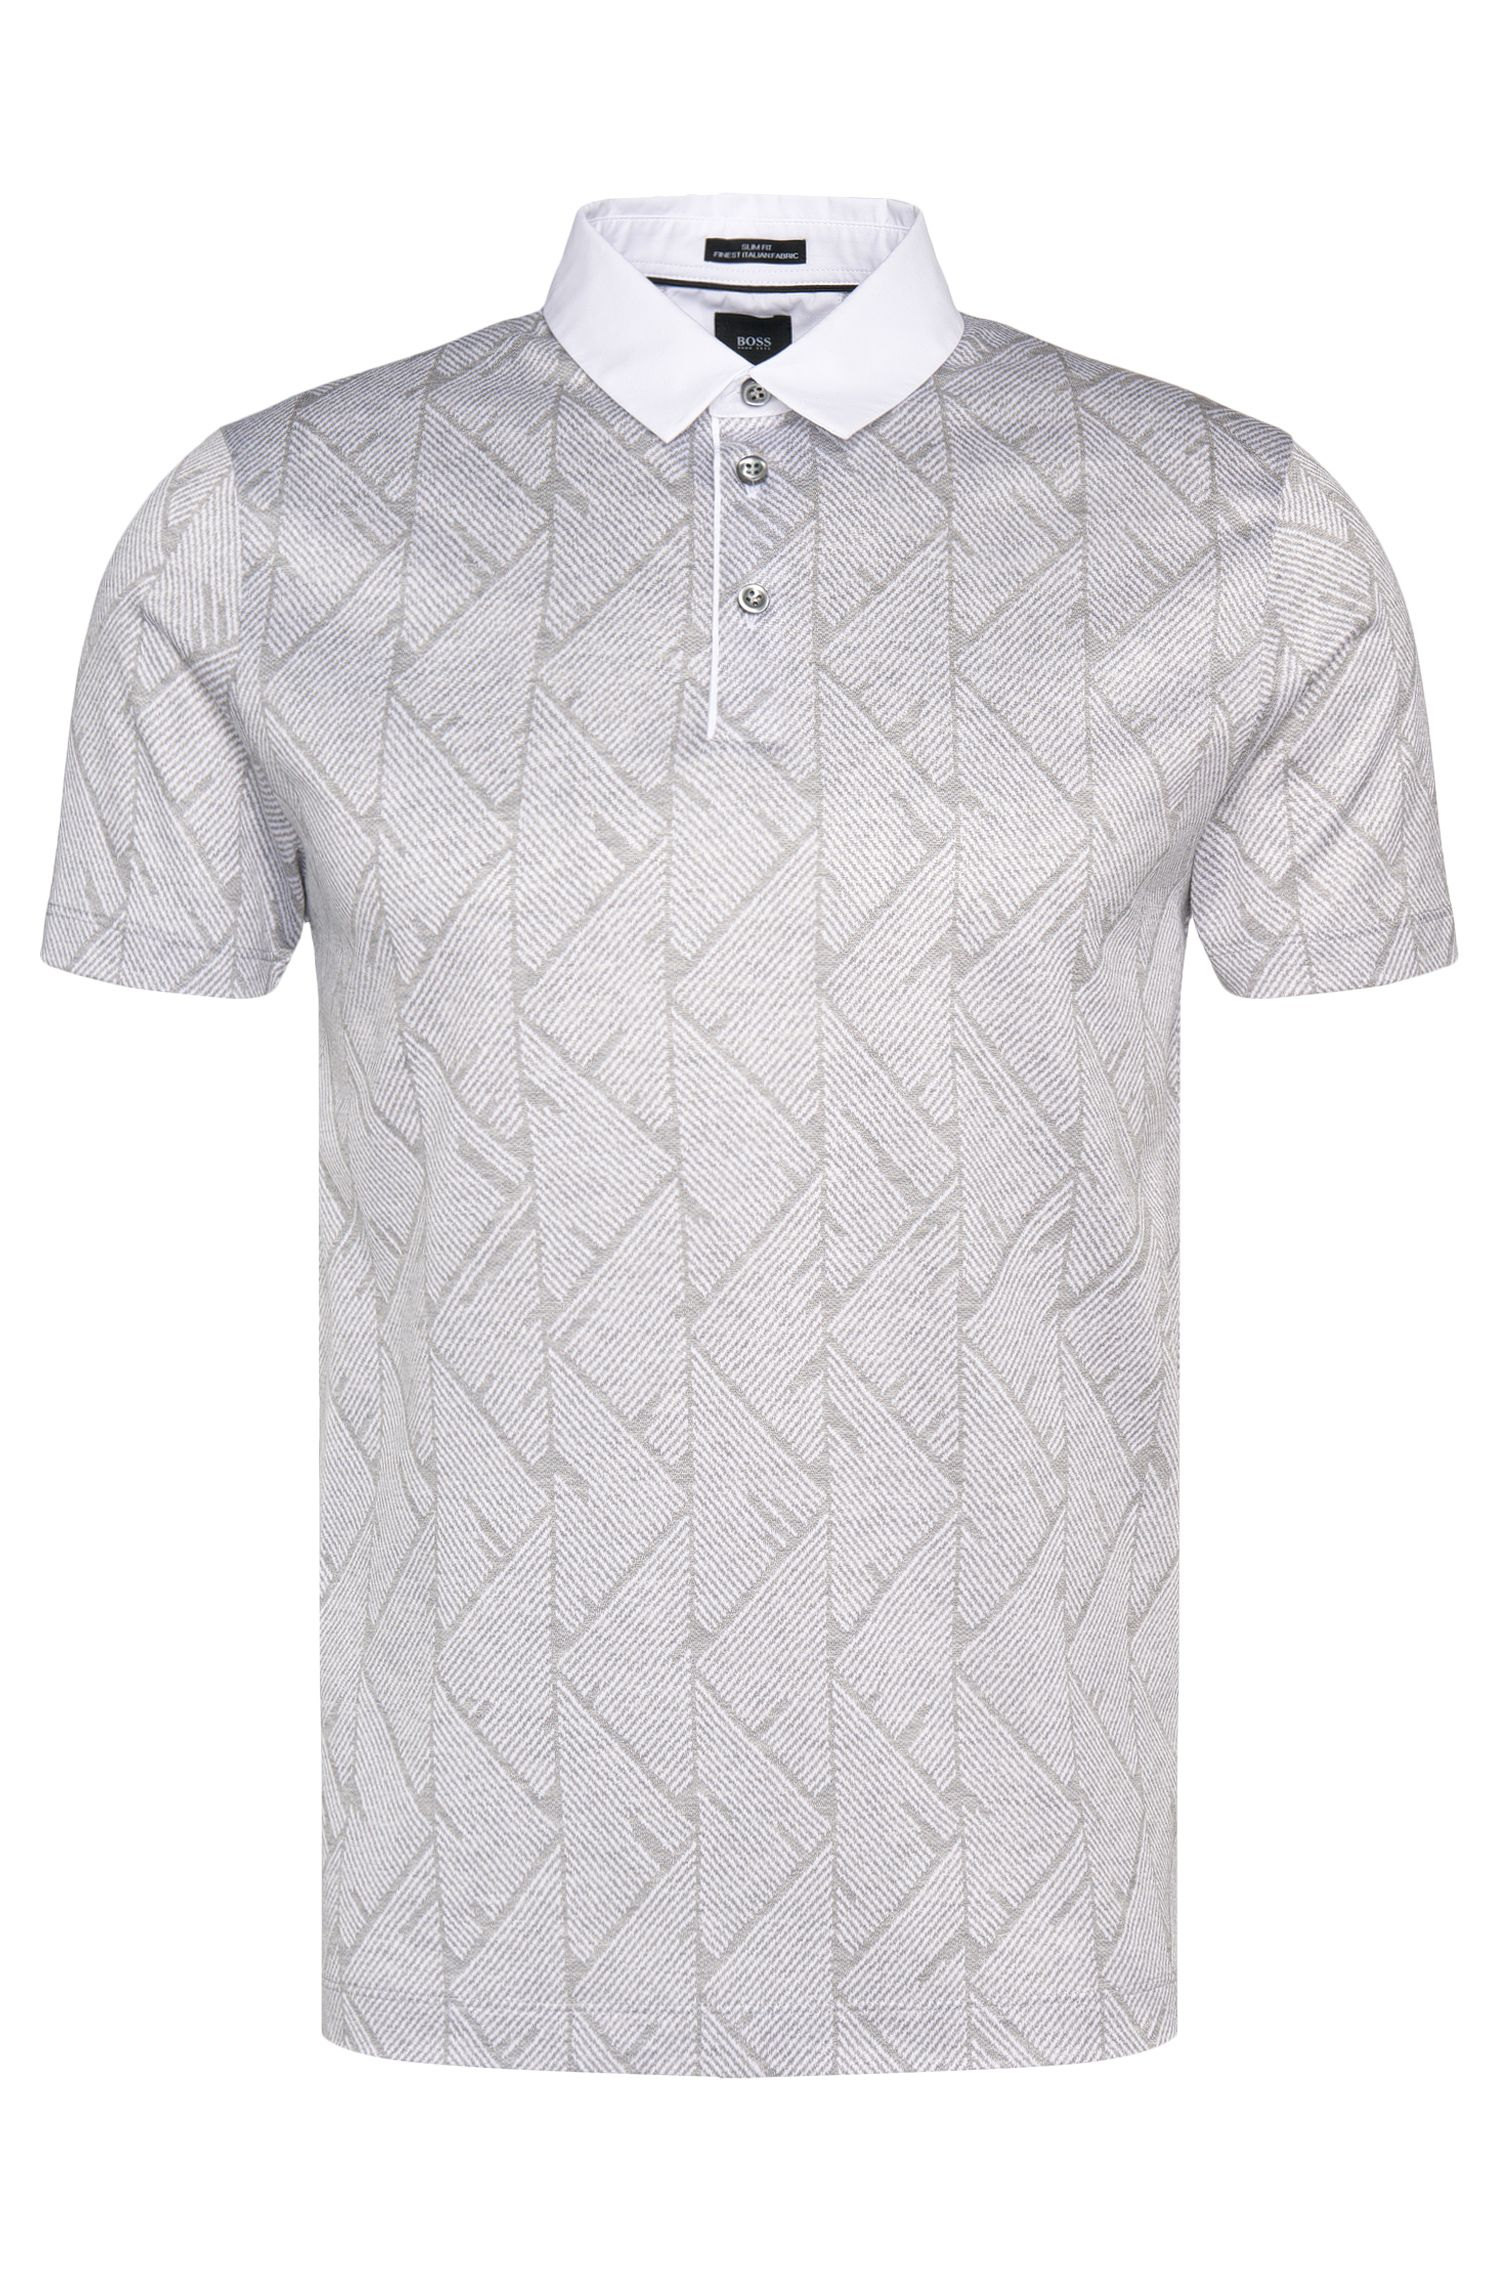 Slim-Fit Tailored Poloshirt aus Baumwolle mit Allover-Print: 'T-Pryde 25'